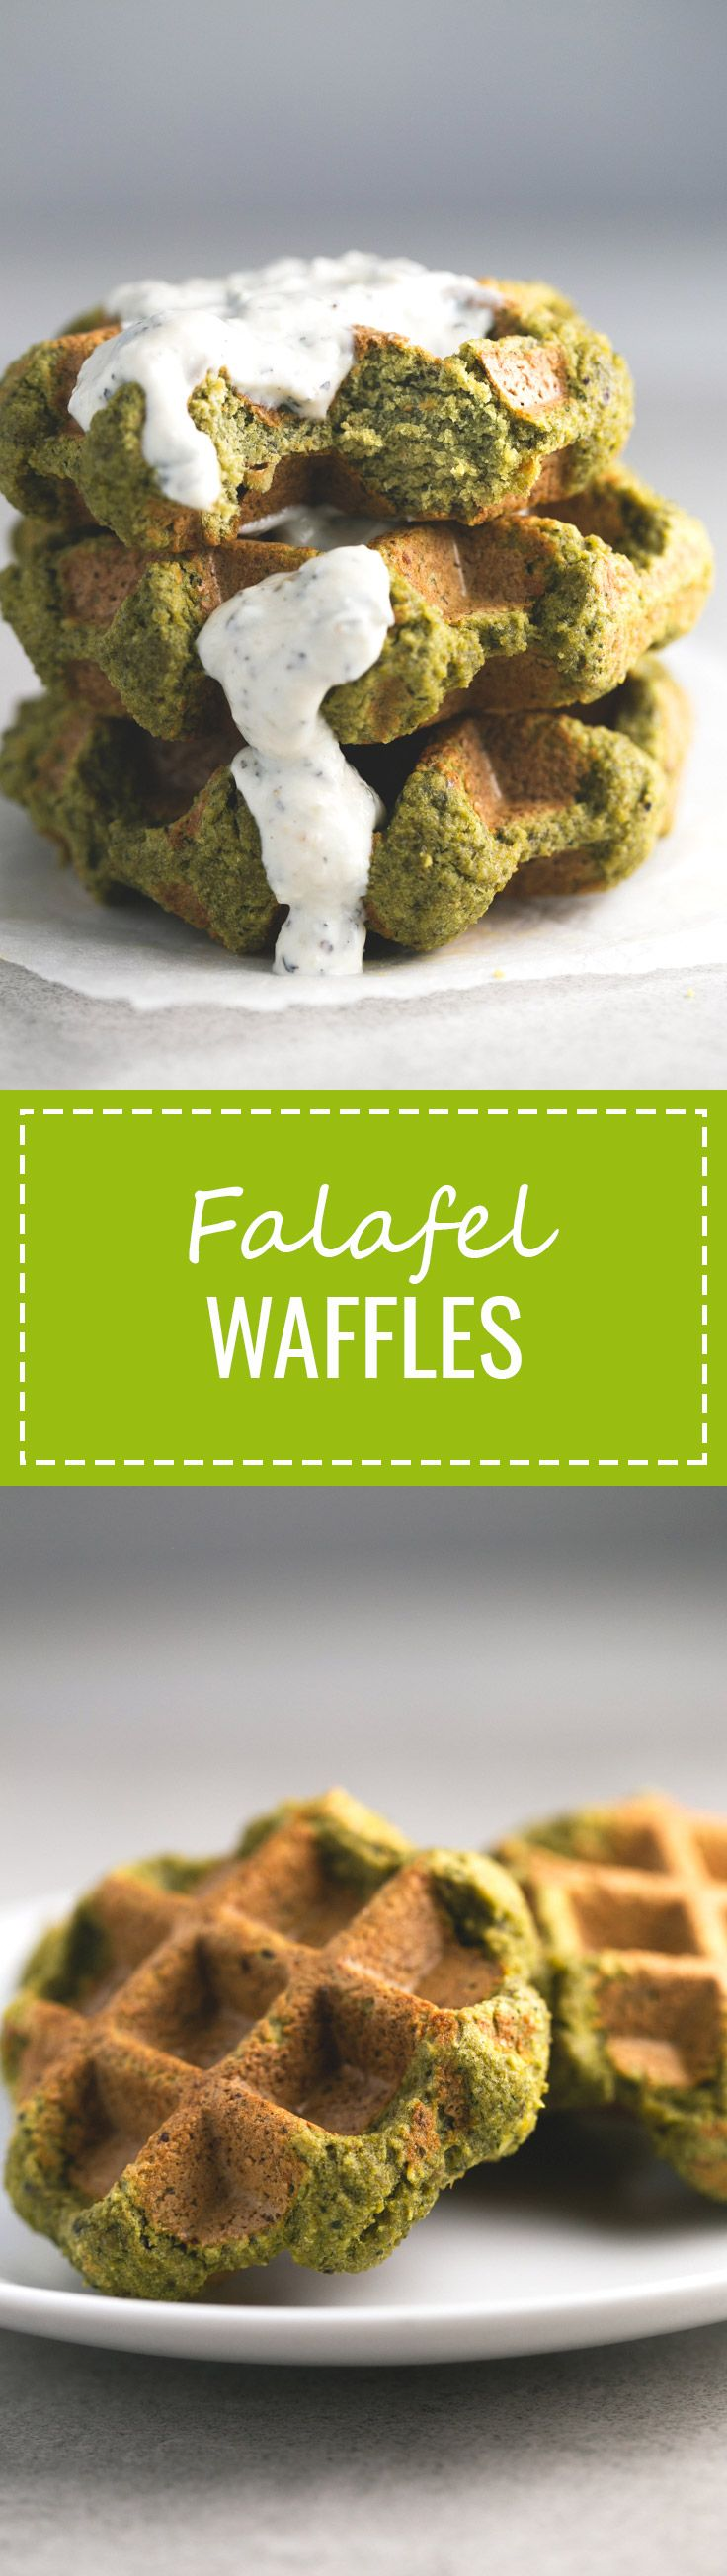 (Vegan and GF) Falafel Waffles - We make this falafel waffles all the time because they're ready in just 7 minutes, are low in fat, affordable and so delicious!